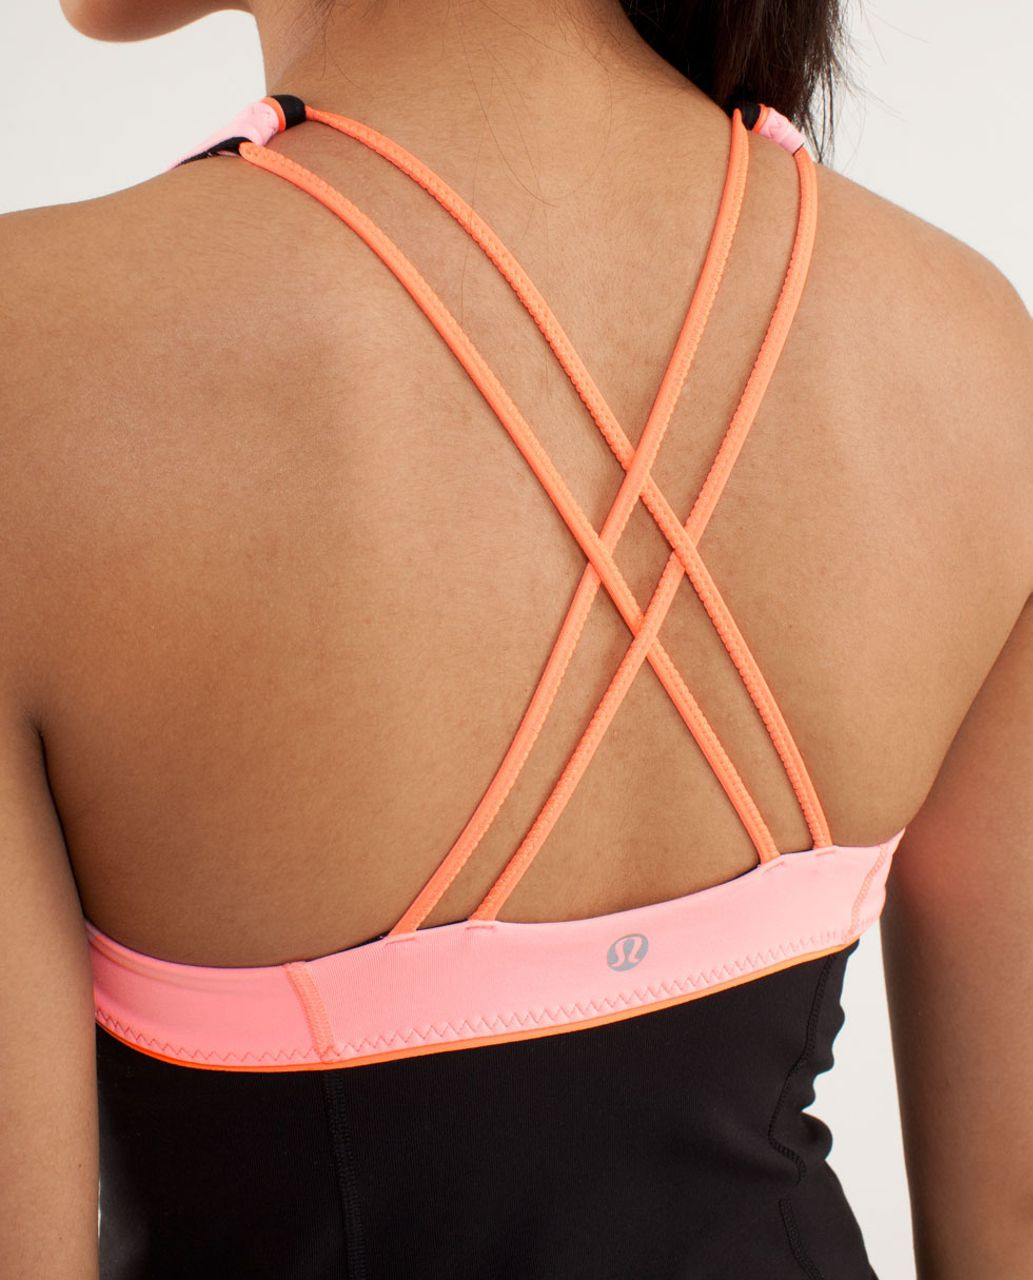 Lululemon Vinyasa Surf Tank - Black / Bleached Coral / Pop Orange